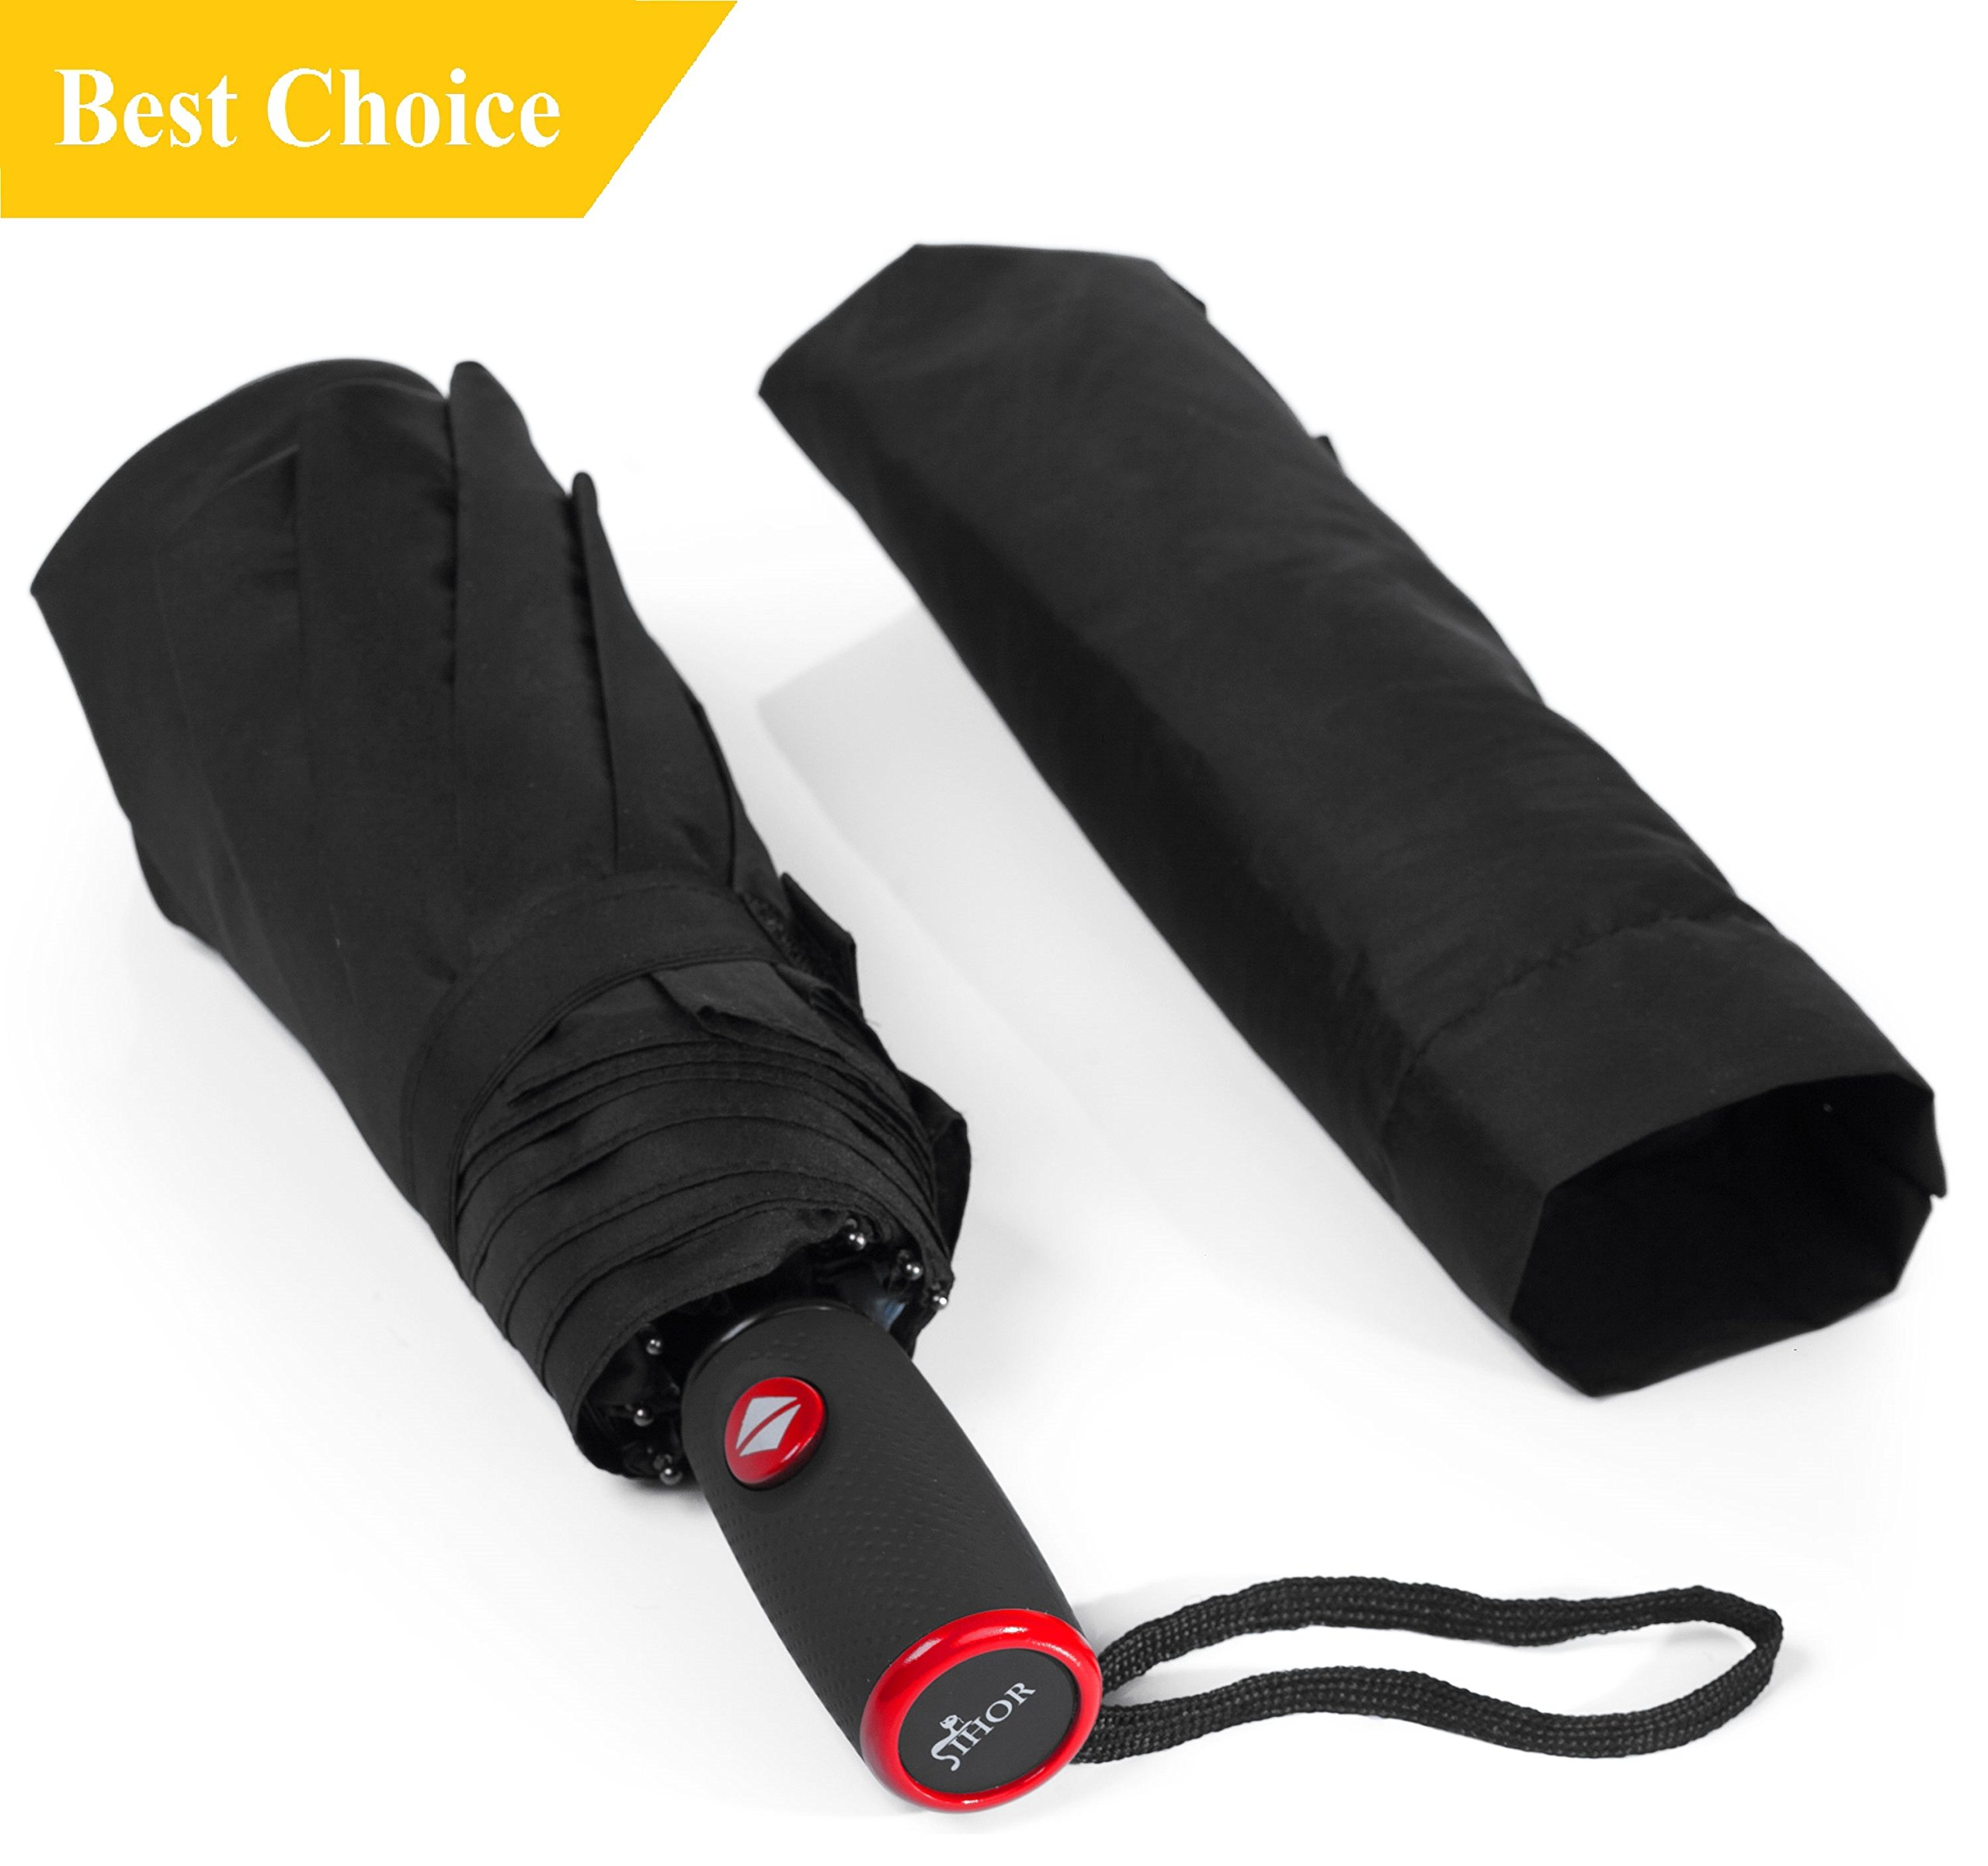 IHOR Best Small Automatic Open & Close Travel Totes Wind-Resistant Portable Compact Windproof Black Umbrella Easy Touch & Strong Micro Mini Male & Female by IHOR